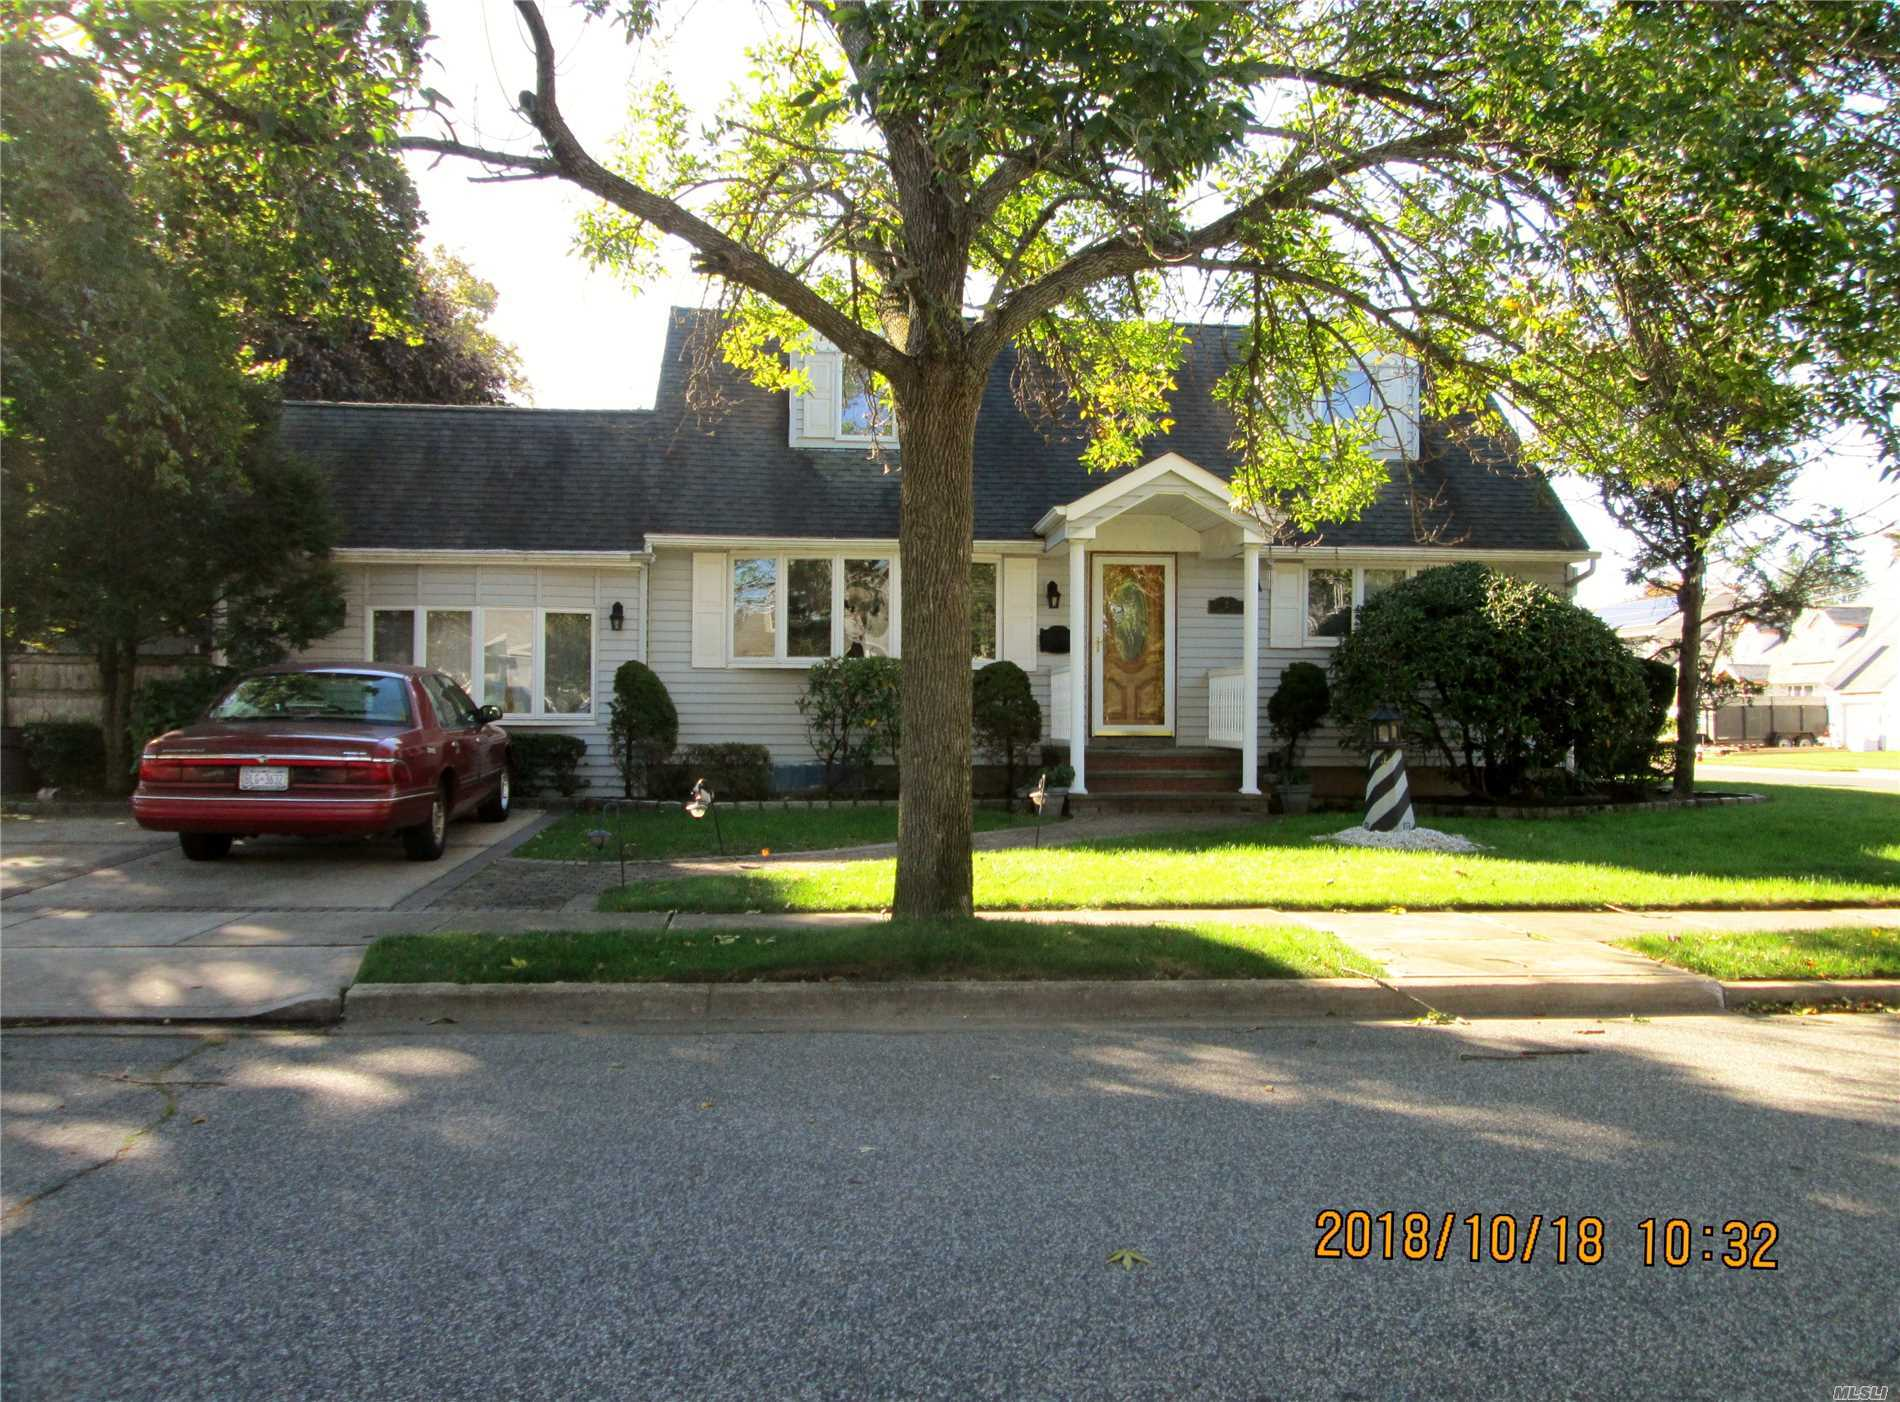 Beautiful Expanded Cape In Plainedge Sd#18. Large Living Rm, Eik, Formal Dining Rm, Full Bath And Master Bdrm With California Closets. Family Rm With Cathedral Ceilings. New 1/2 Bath. Upstairs Has Large Bedroom And Framing For A 4th Bedroom. Basement Is Part Finished. Hardwood Floors. Generator Included. **Tax Grievance Has Been Approved For A 19% Reduction**